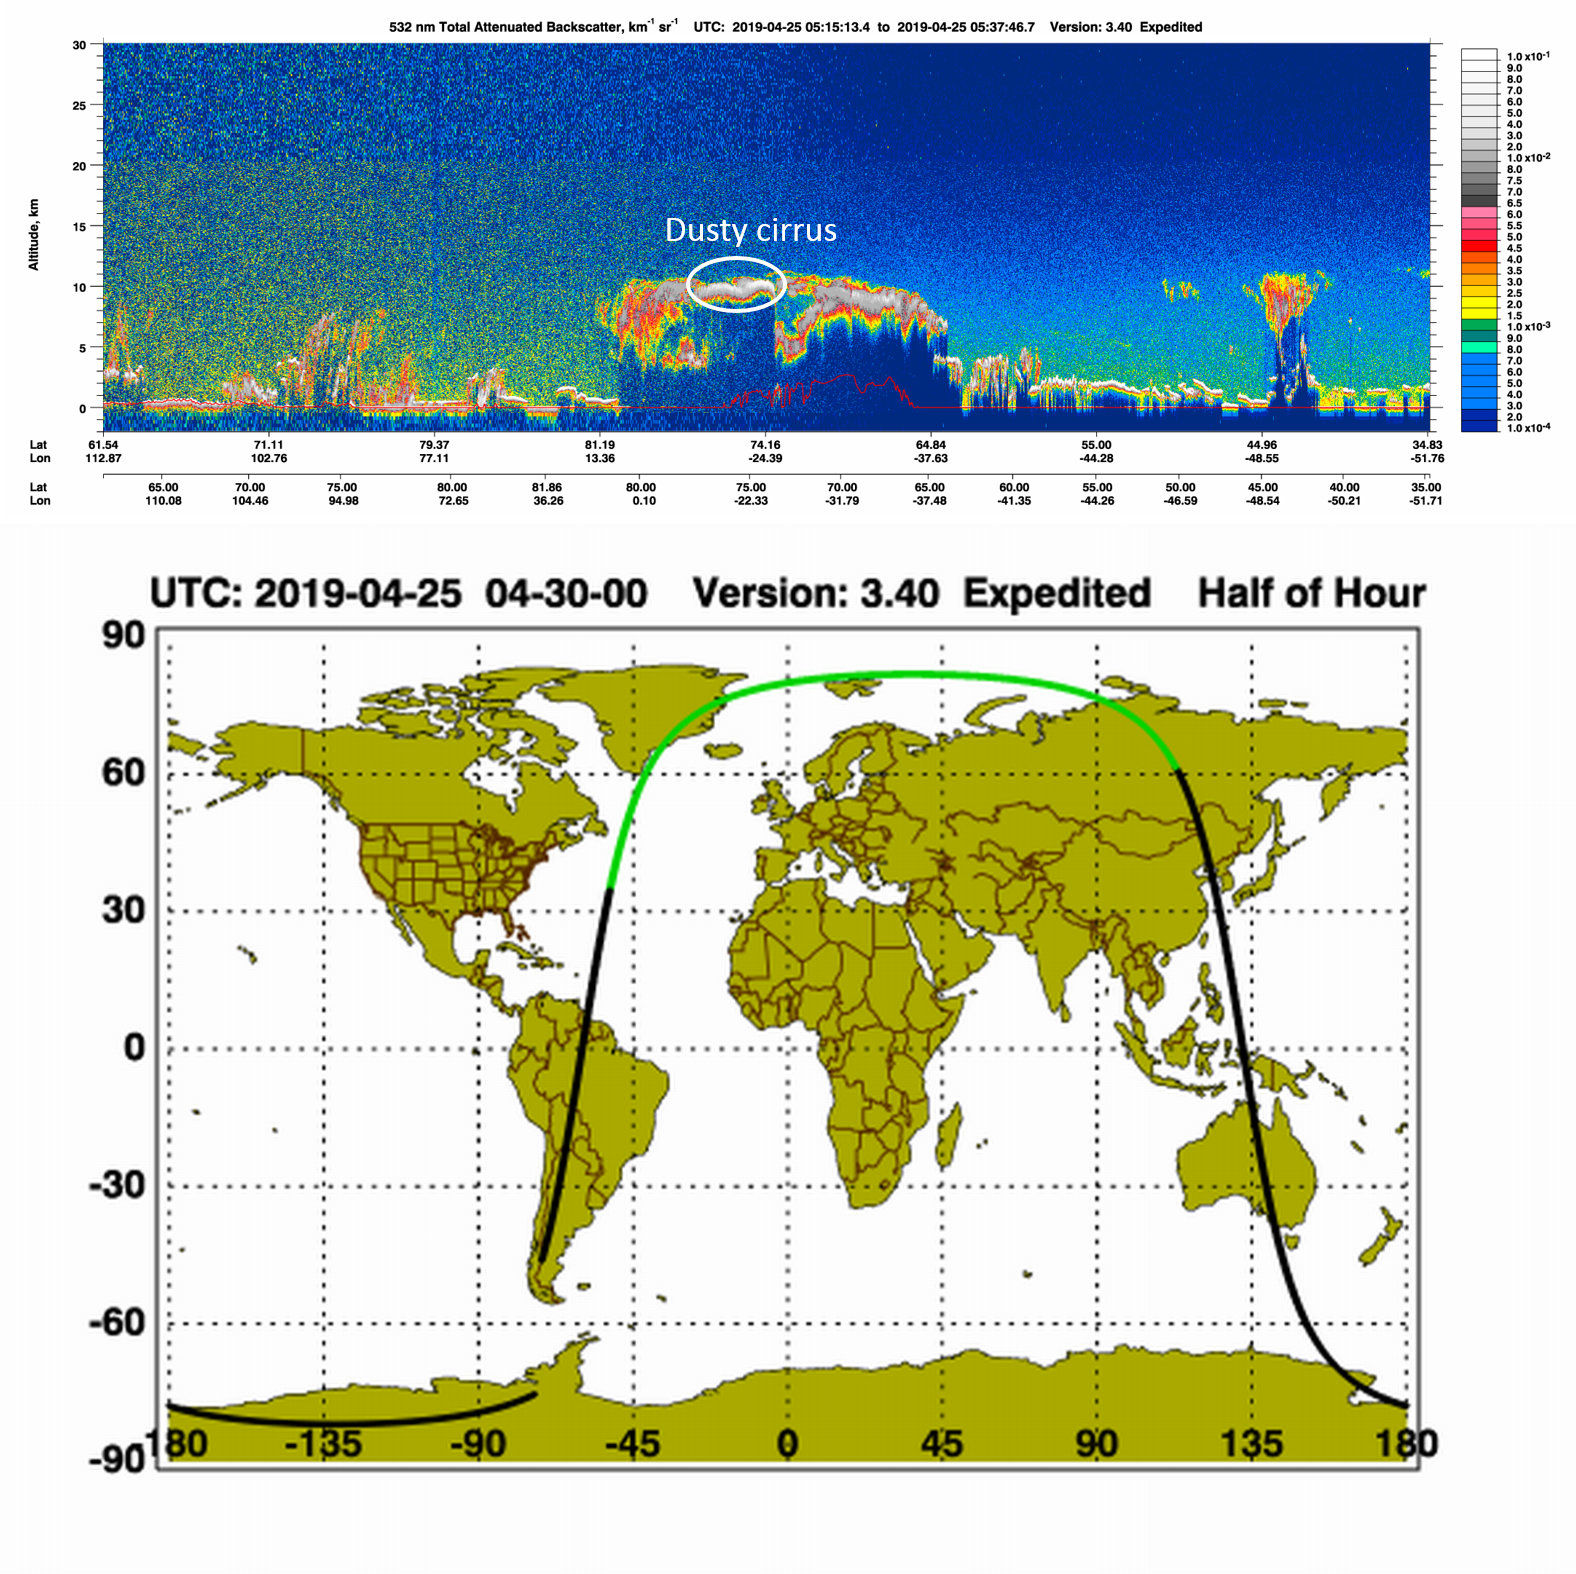 CALIOP lidar curtain (532 nm attenuated backscatter) from the CALIPSO satellite, 25 April